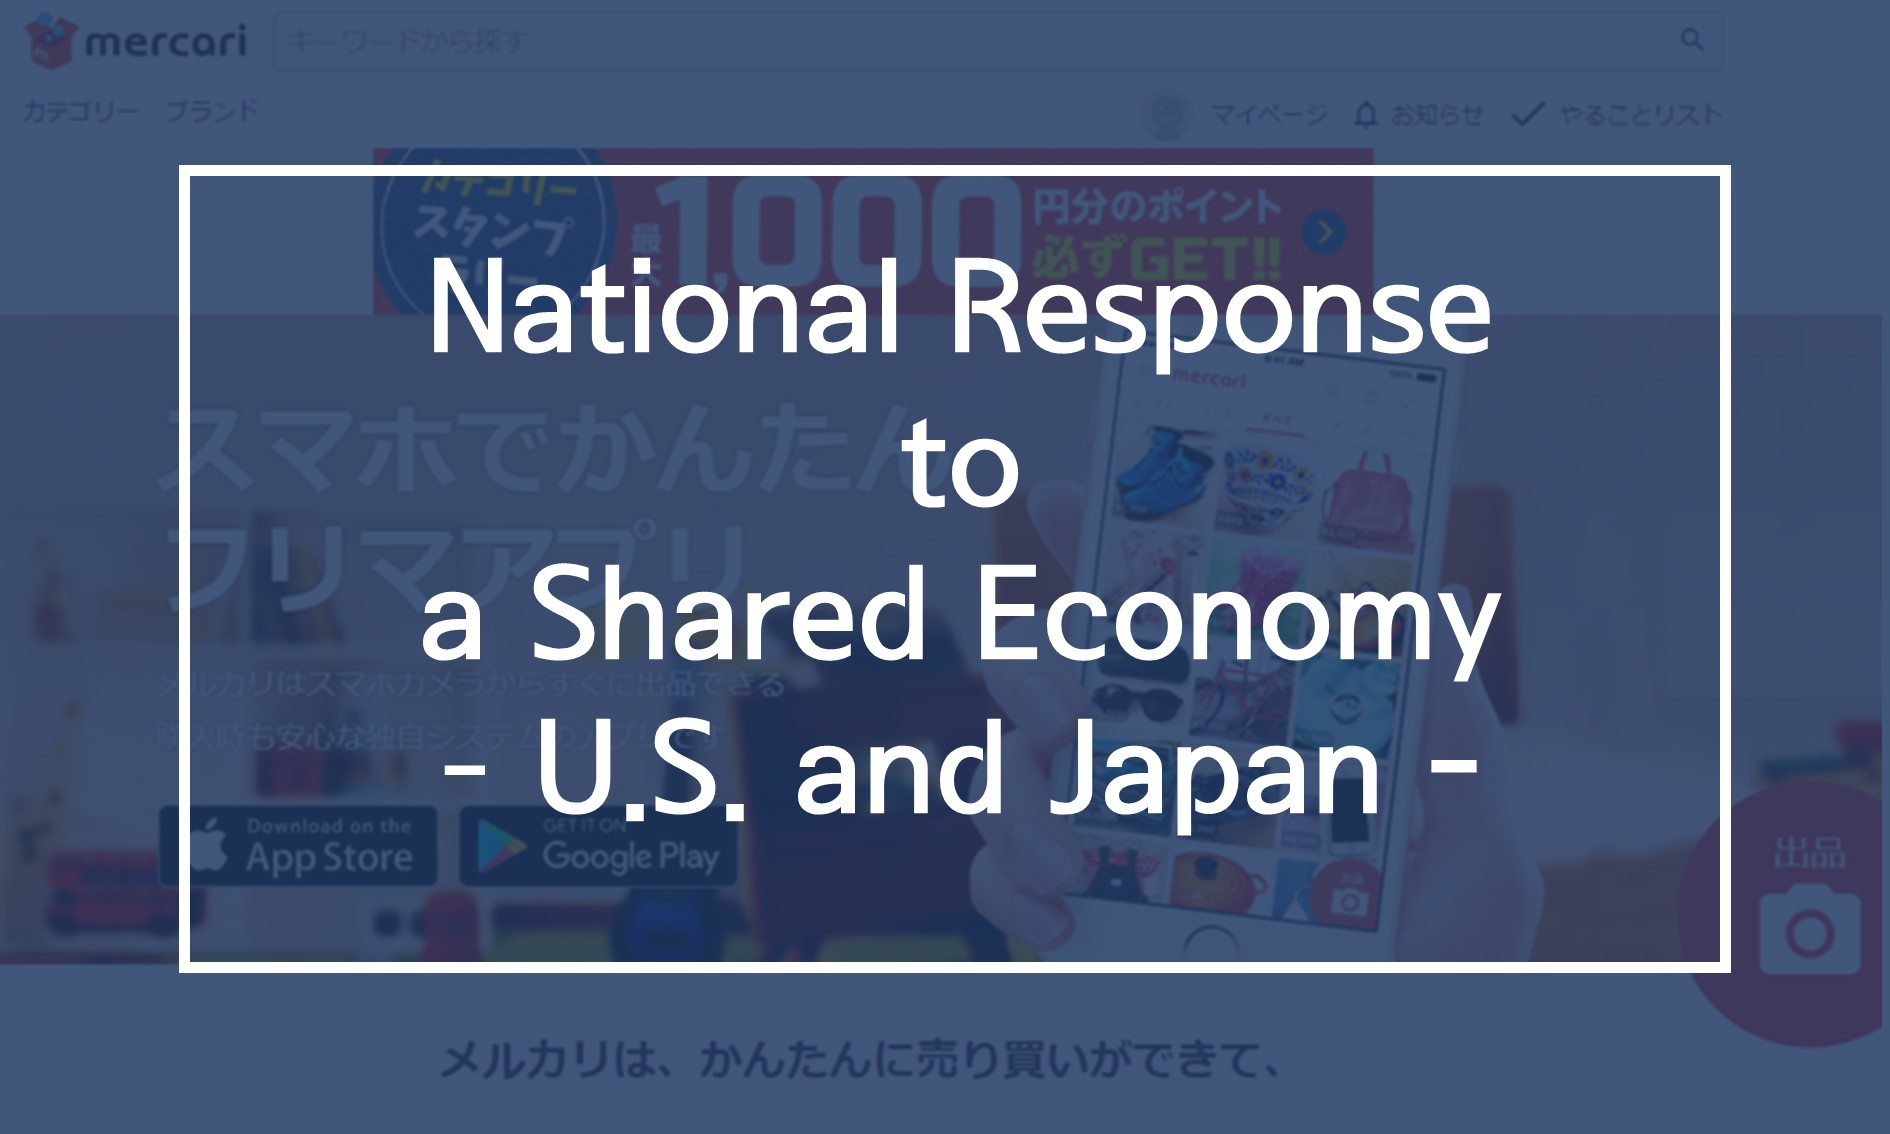 [Resources] National Response to a Shared Economy – U.S. and Japan